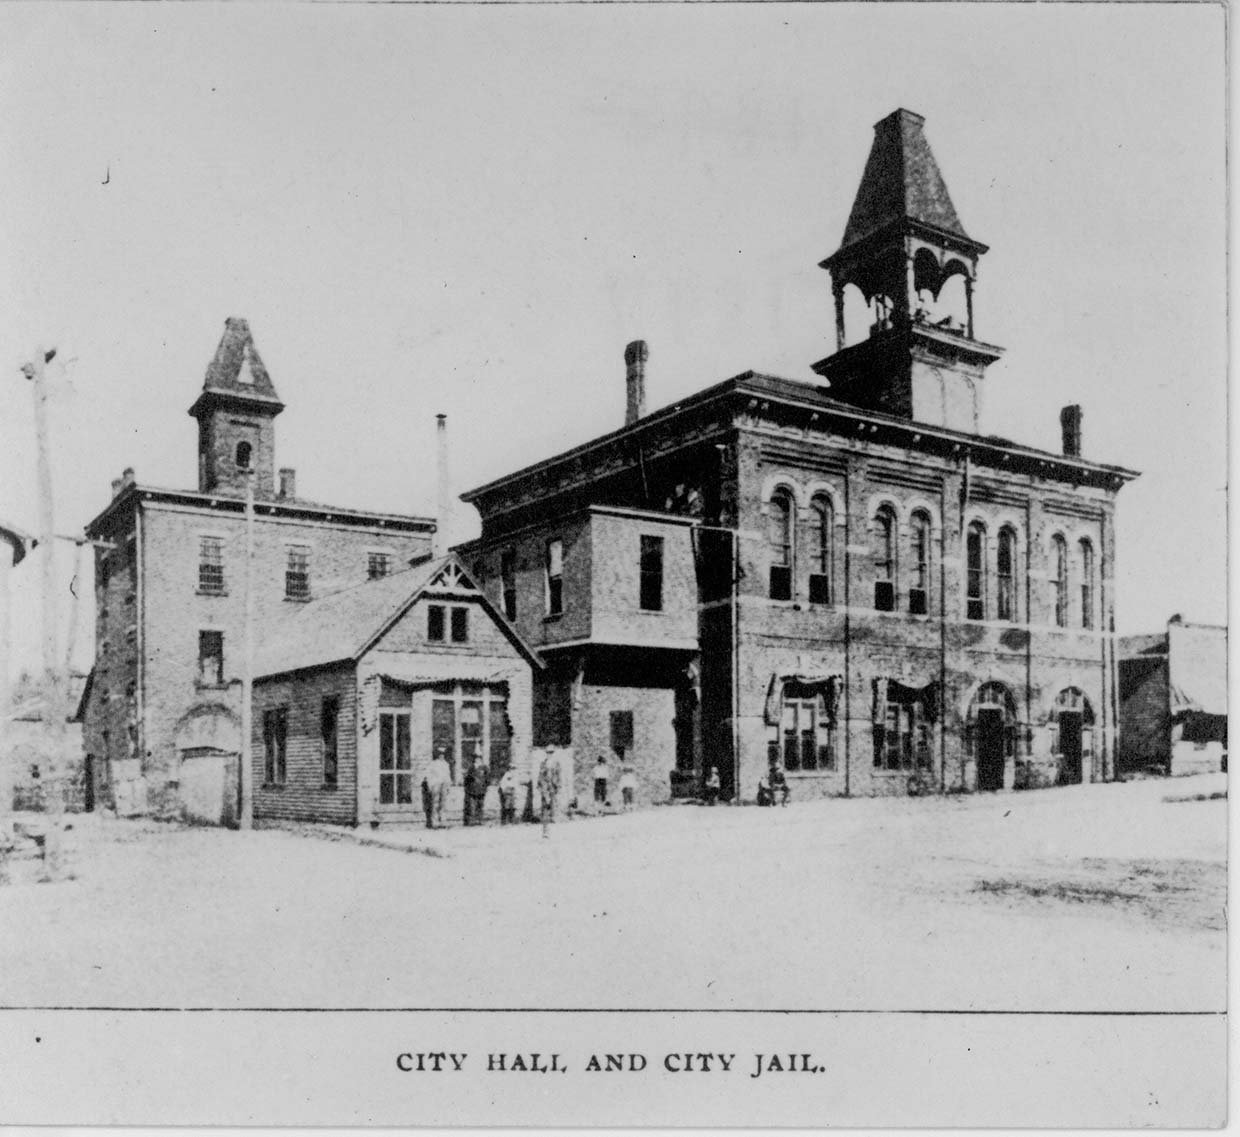 The 1886 City Hall, on the 400 block of Ninth Street, also housed the city jail, police and fire departments, and temporarily served as the county courthouse. Image courtesy of Marshall University Special Collections.